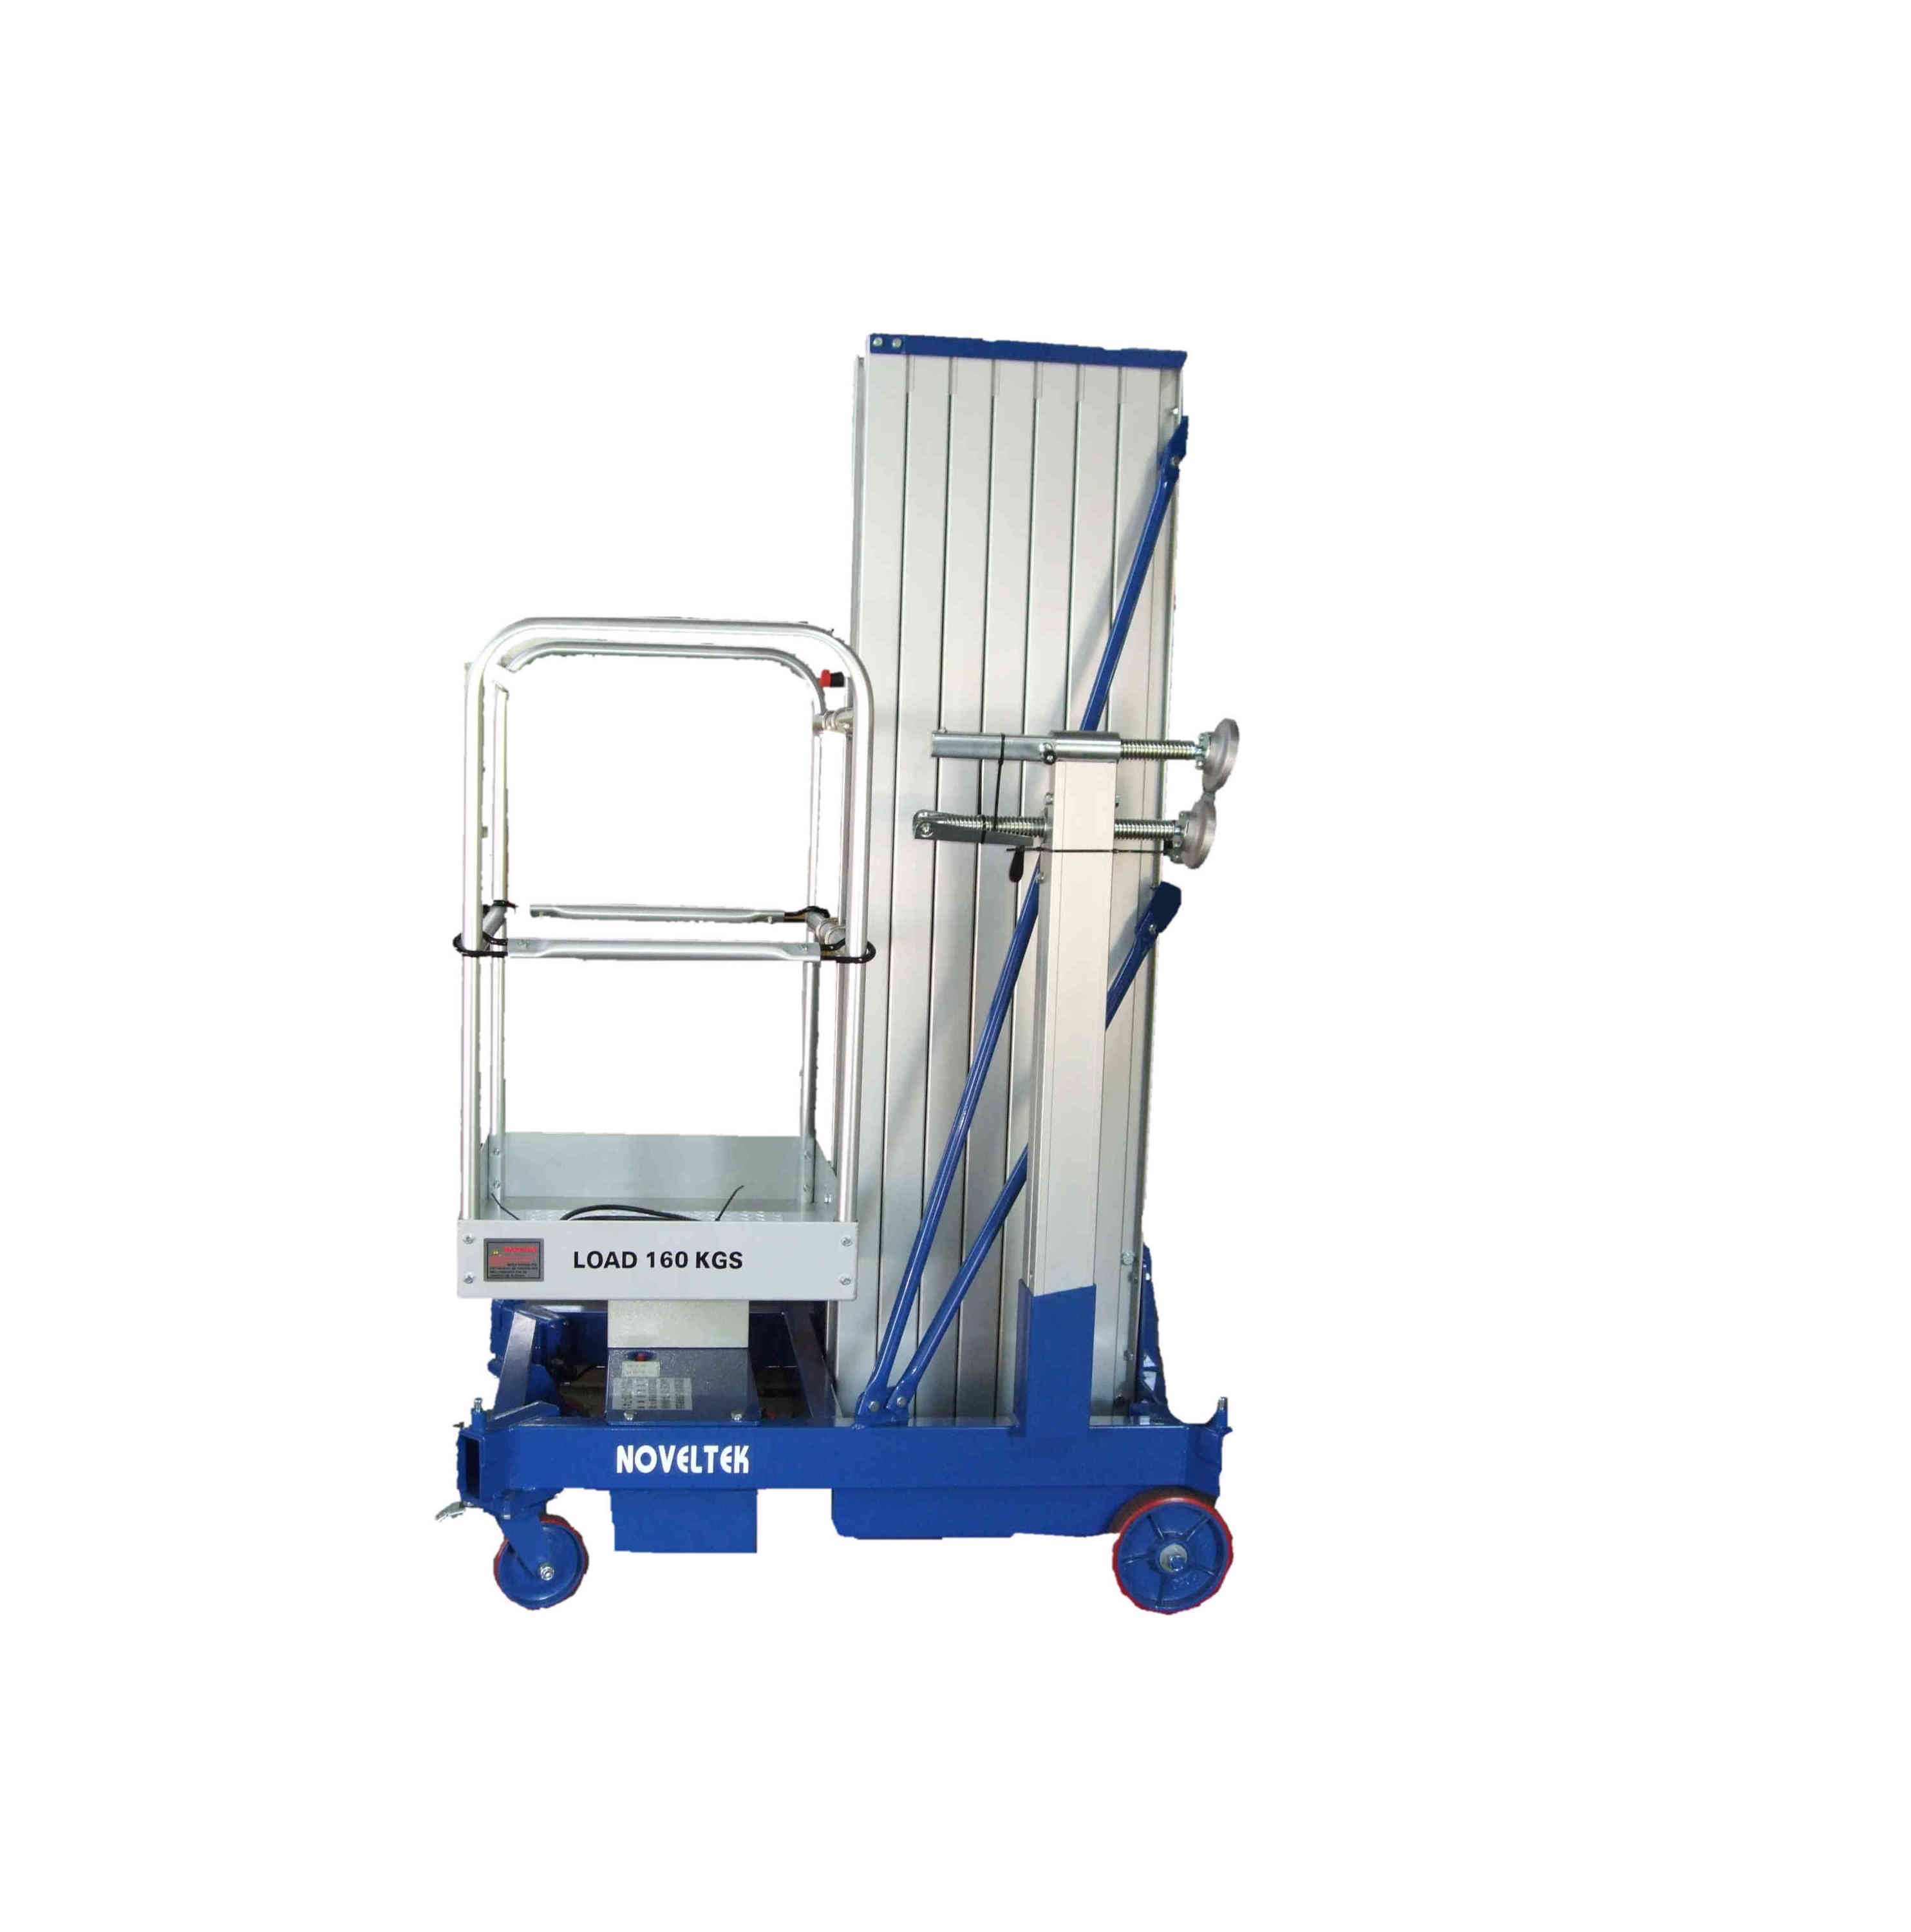 SERIES VERTICAL LIFT(Maximum height of 5 to 11 meters rose)MPL-DC